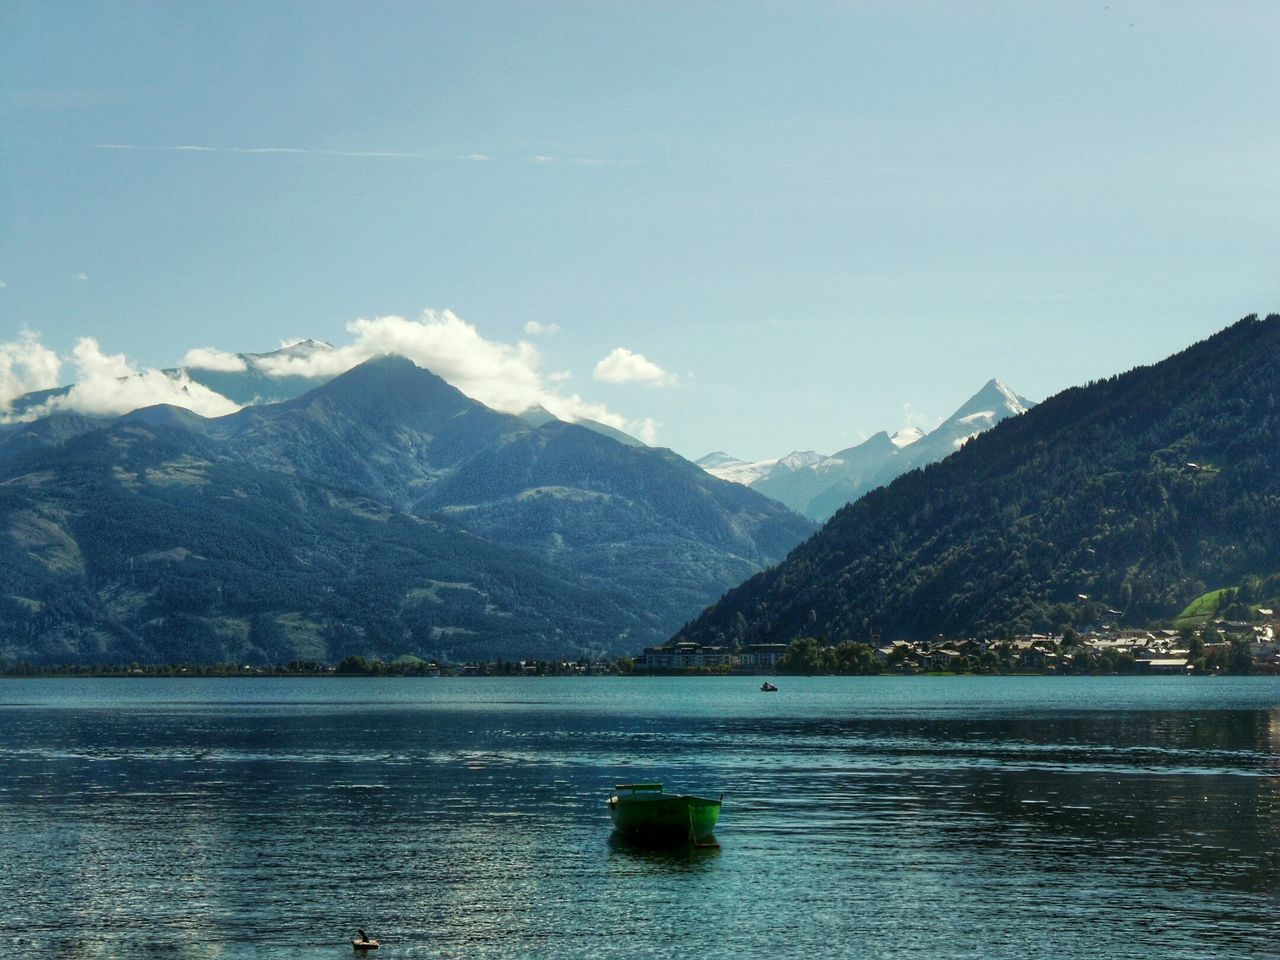 """Late afternoon at the lake"". The Sun already settled down the Mountains. Lake View Lake Boats Lago See Zell Am See Barchetta SalzburgerLand Pinzgau (I think) Point And Shoot plus EyeEm Edited Eyeemfilter Remembrance Austria Alpen Alpi del Salisburghese"